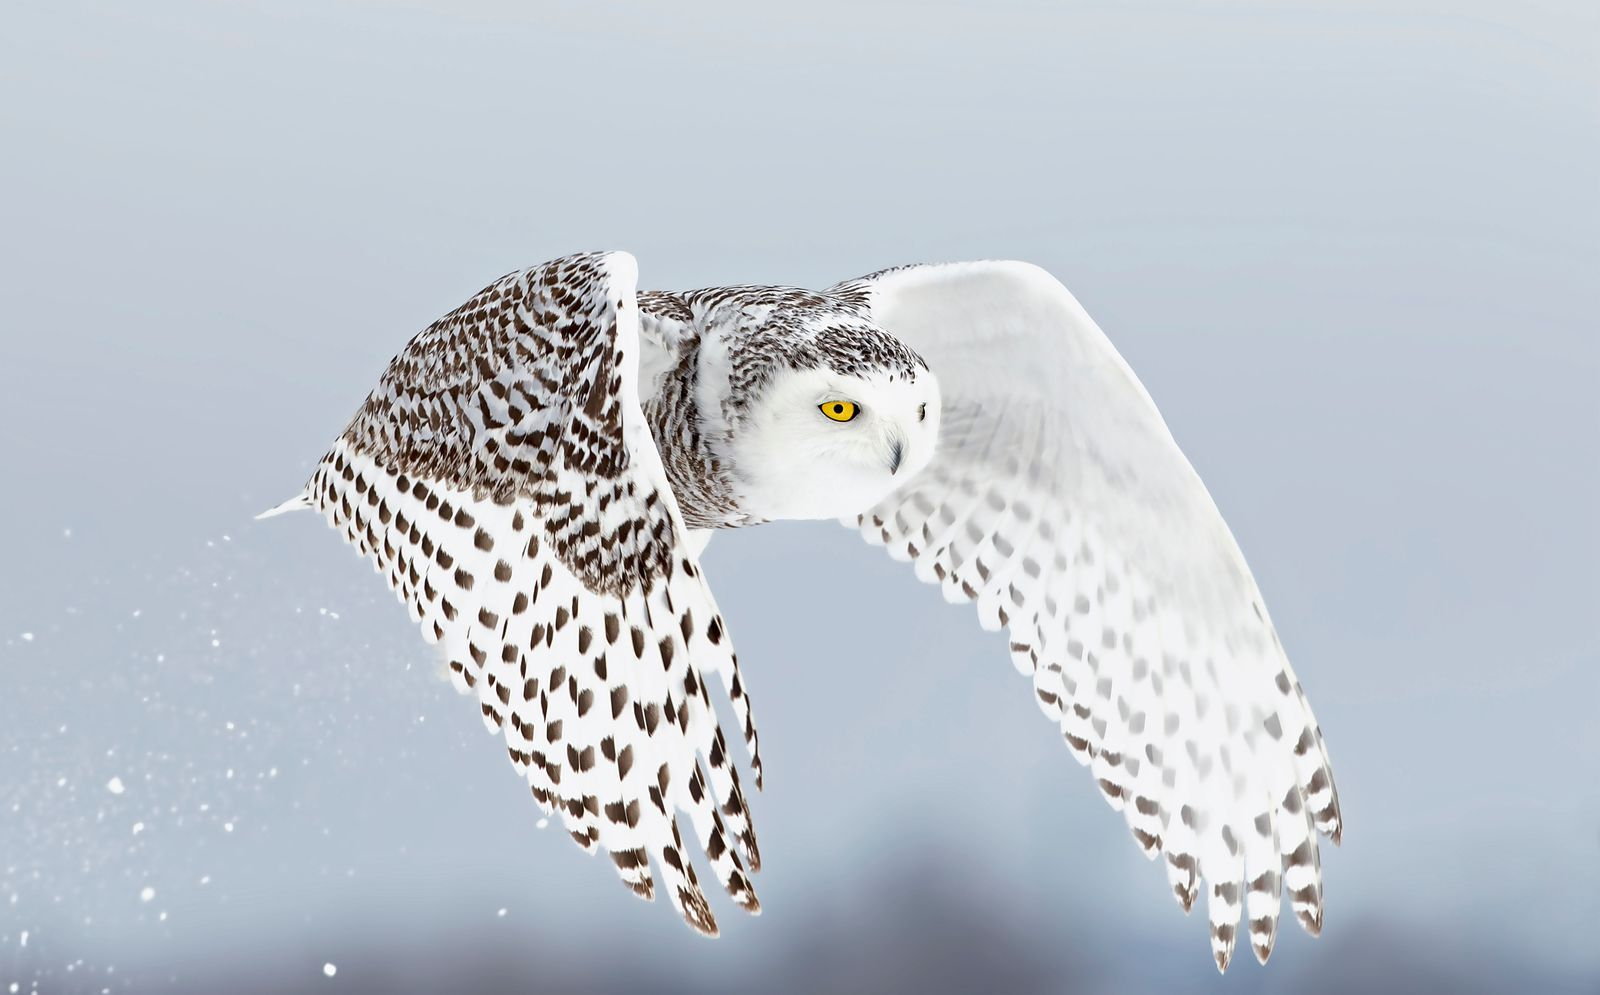 Secrets of the Snowy Owl Habitat, Adaptations, and Other